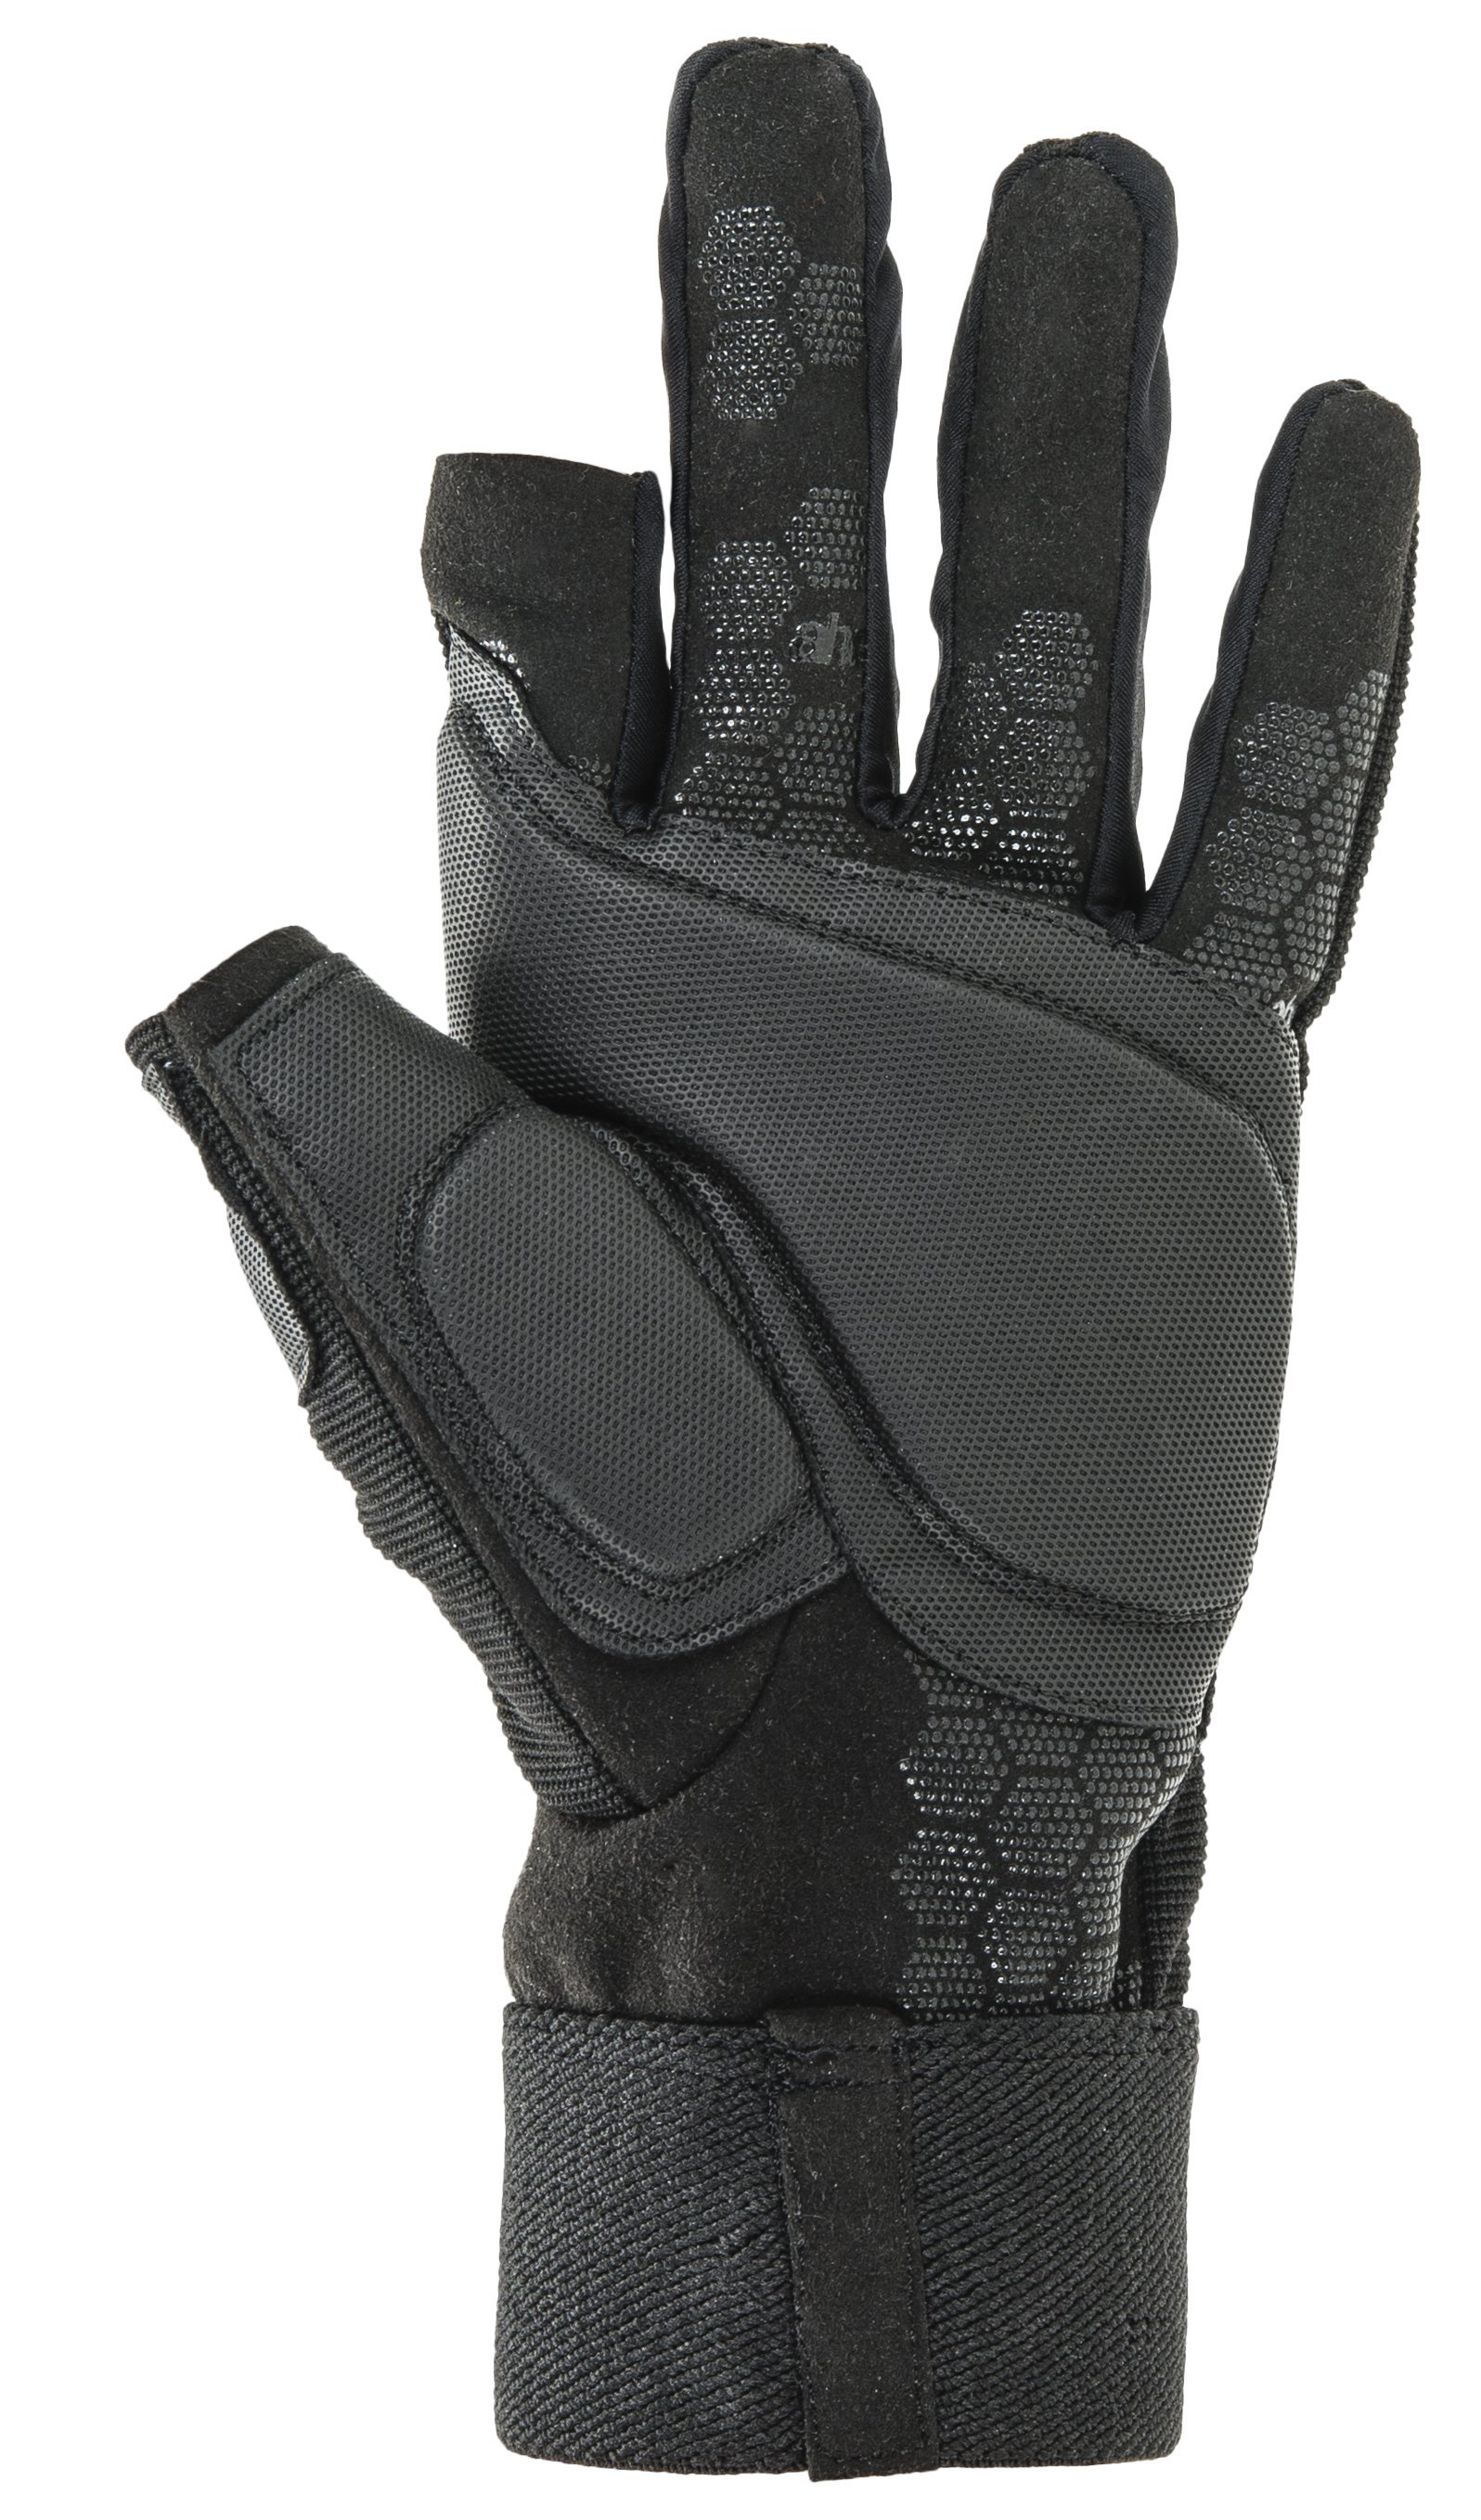 ahg-shooting glove CONTACT